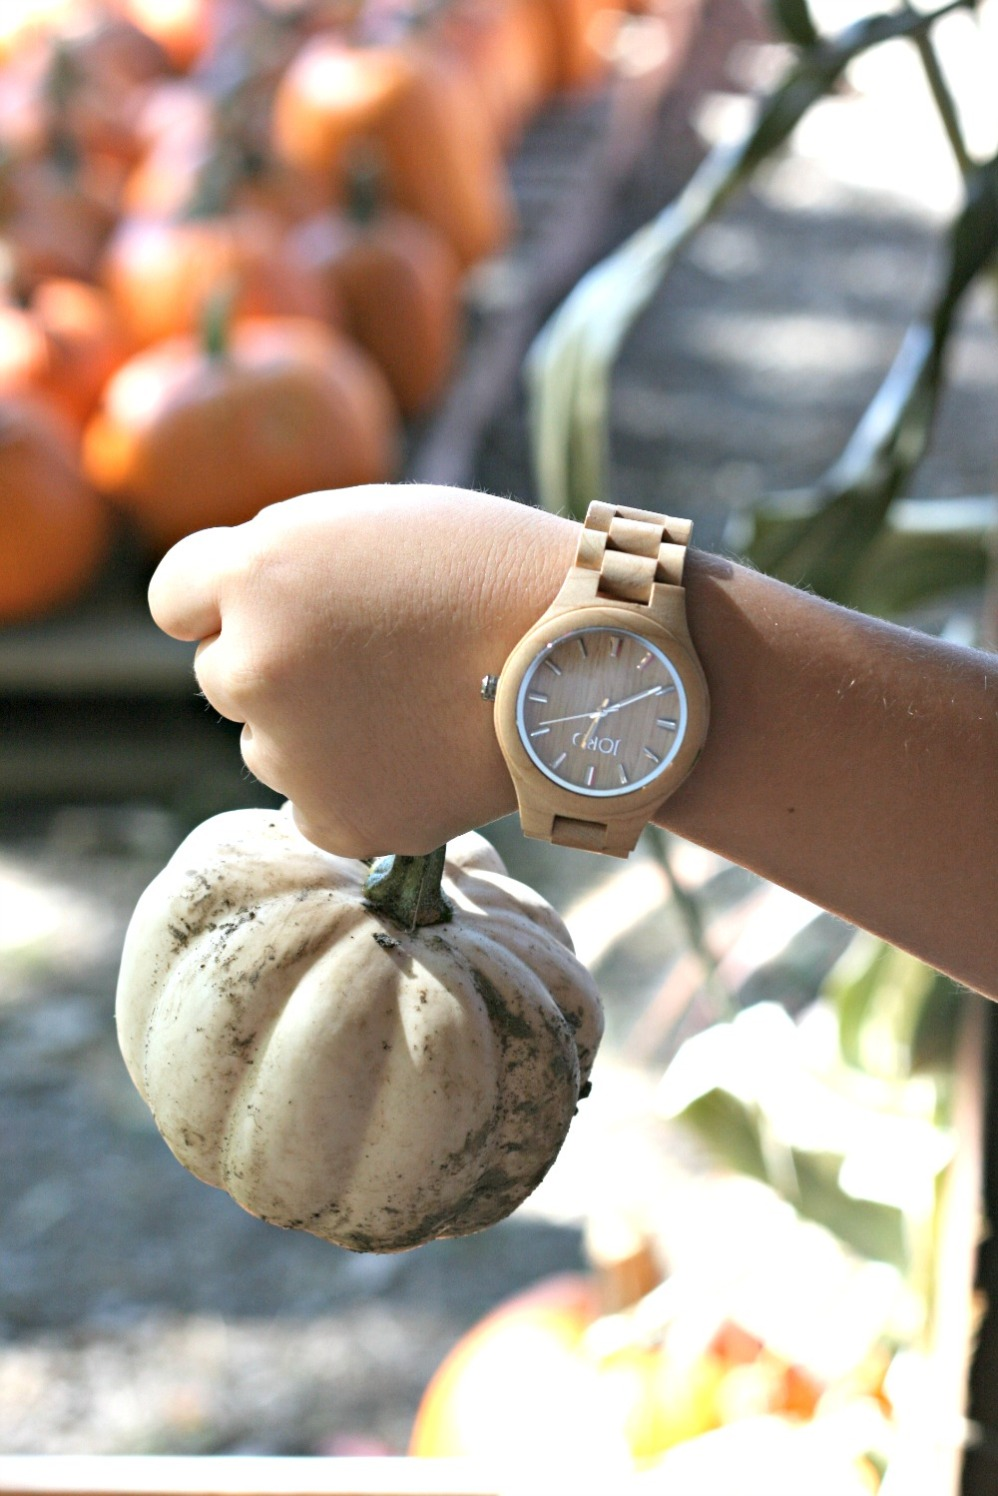 apple-picking-white-pumpkin-jord-wood-watch-fieldcrest-maple